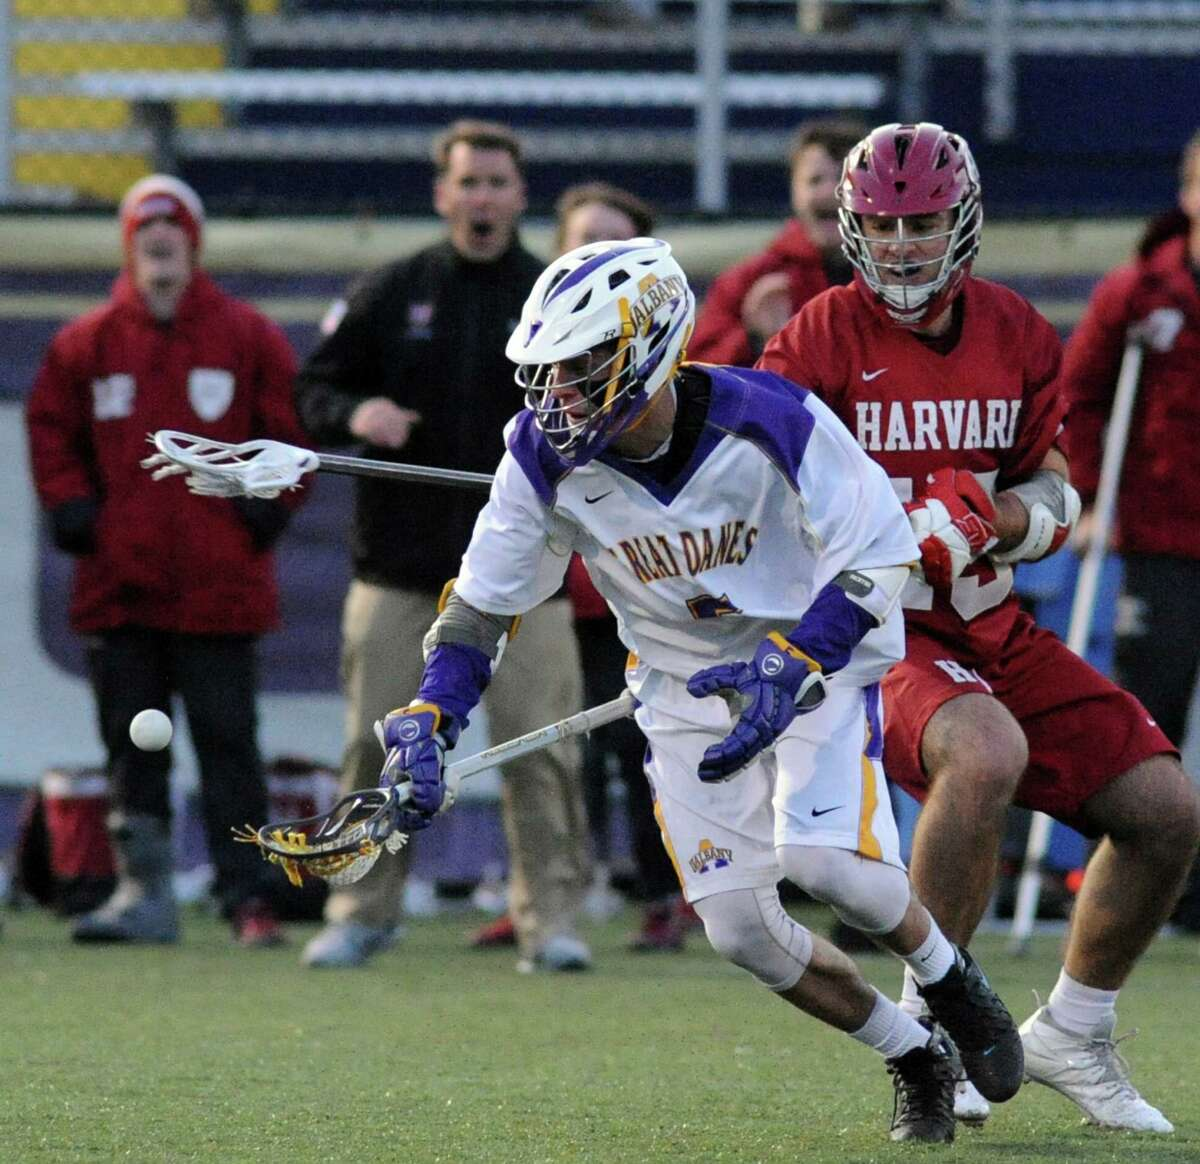 UAlbany's Connor Fields goes after the ball during their college lacrosse game against Hartford on Wednesday March 30, 2016 in Albany, N.Y. (Michael P. Farrell/Times Union)